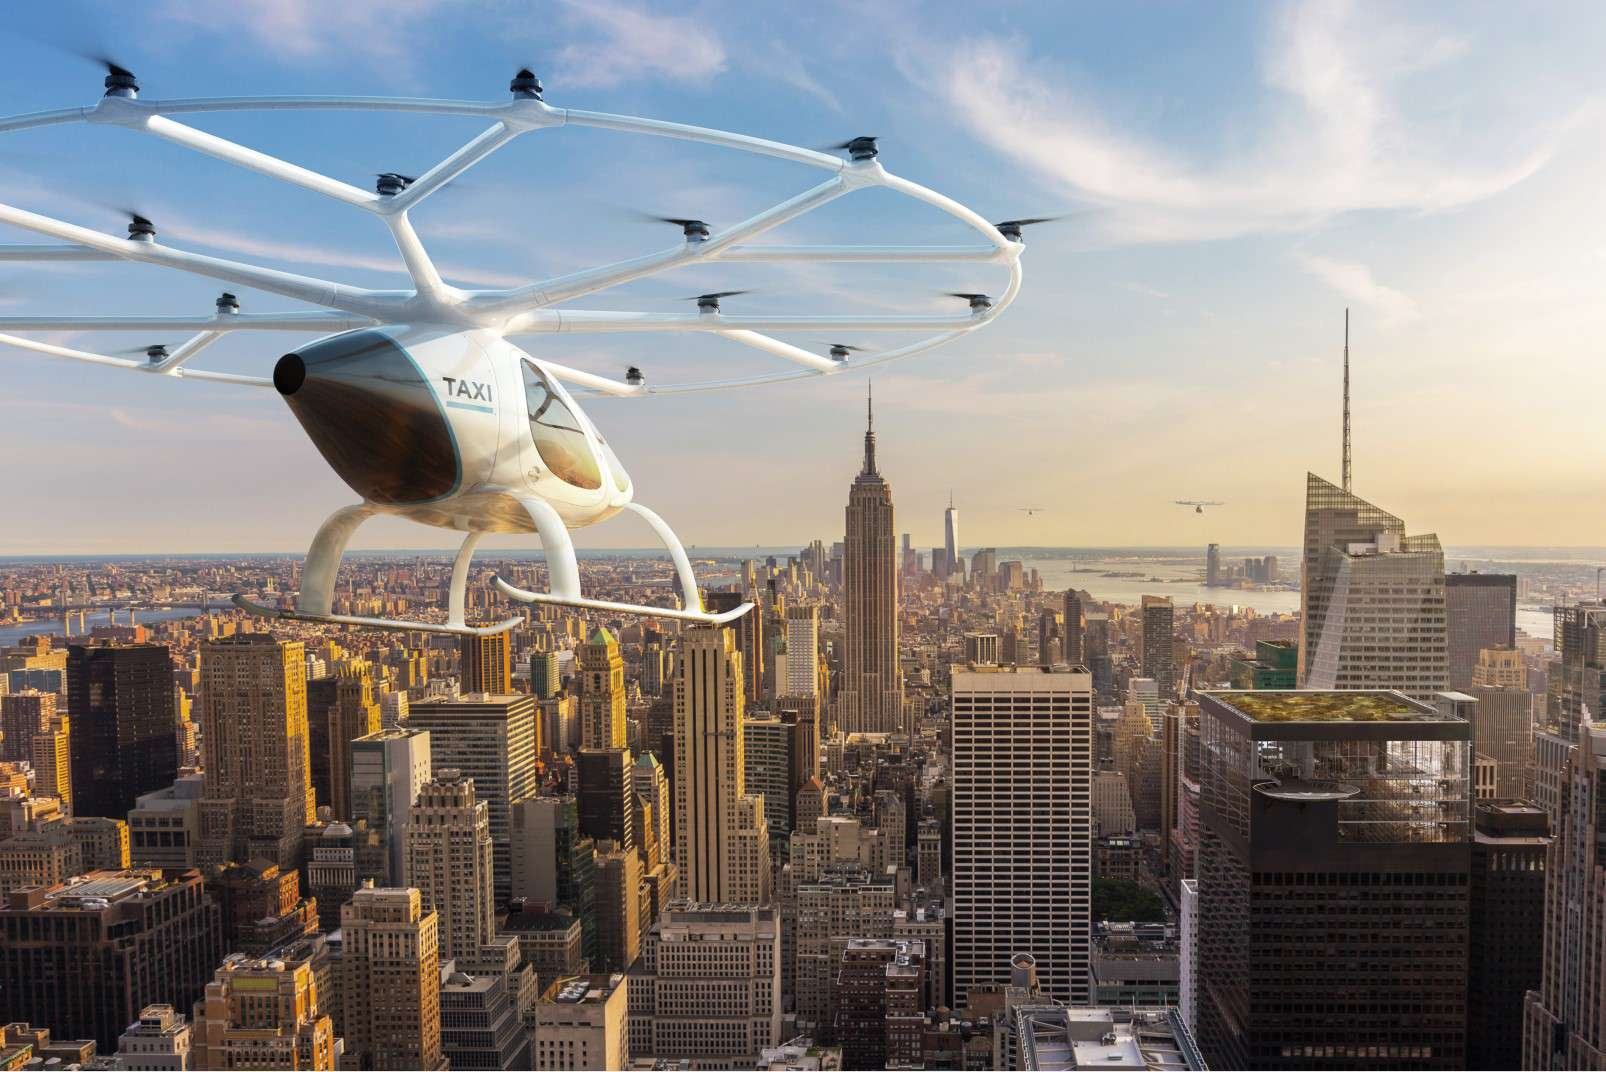 Volocopter passenger-carrying drone panorama over NYC